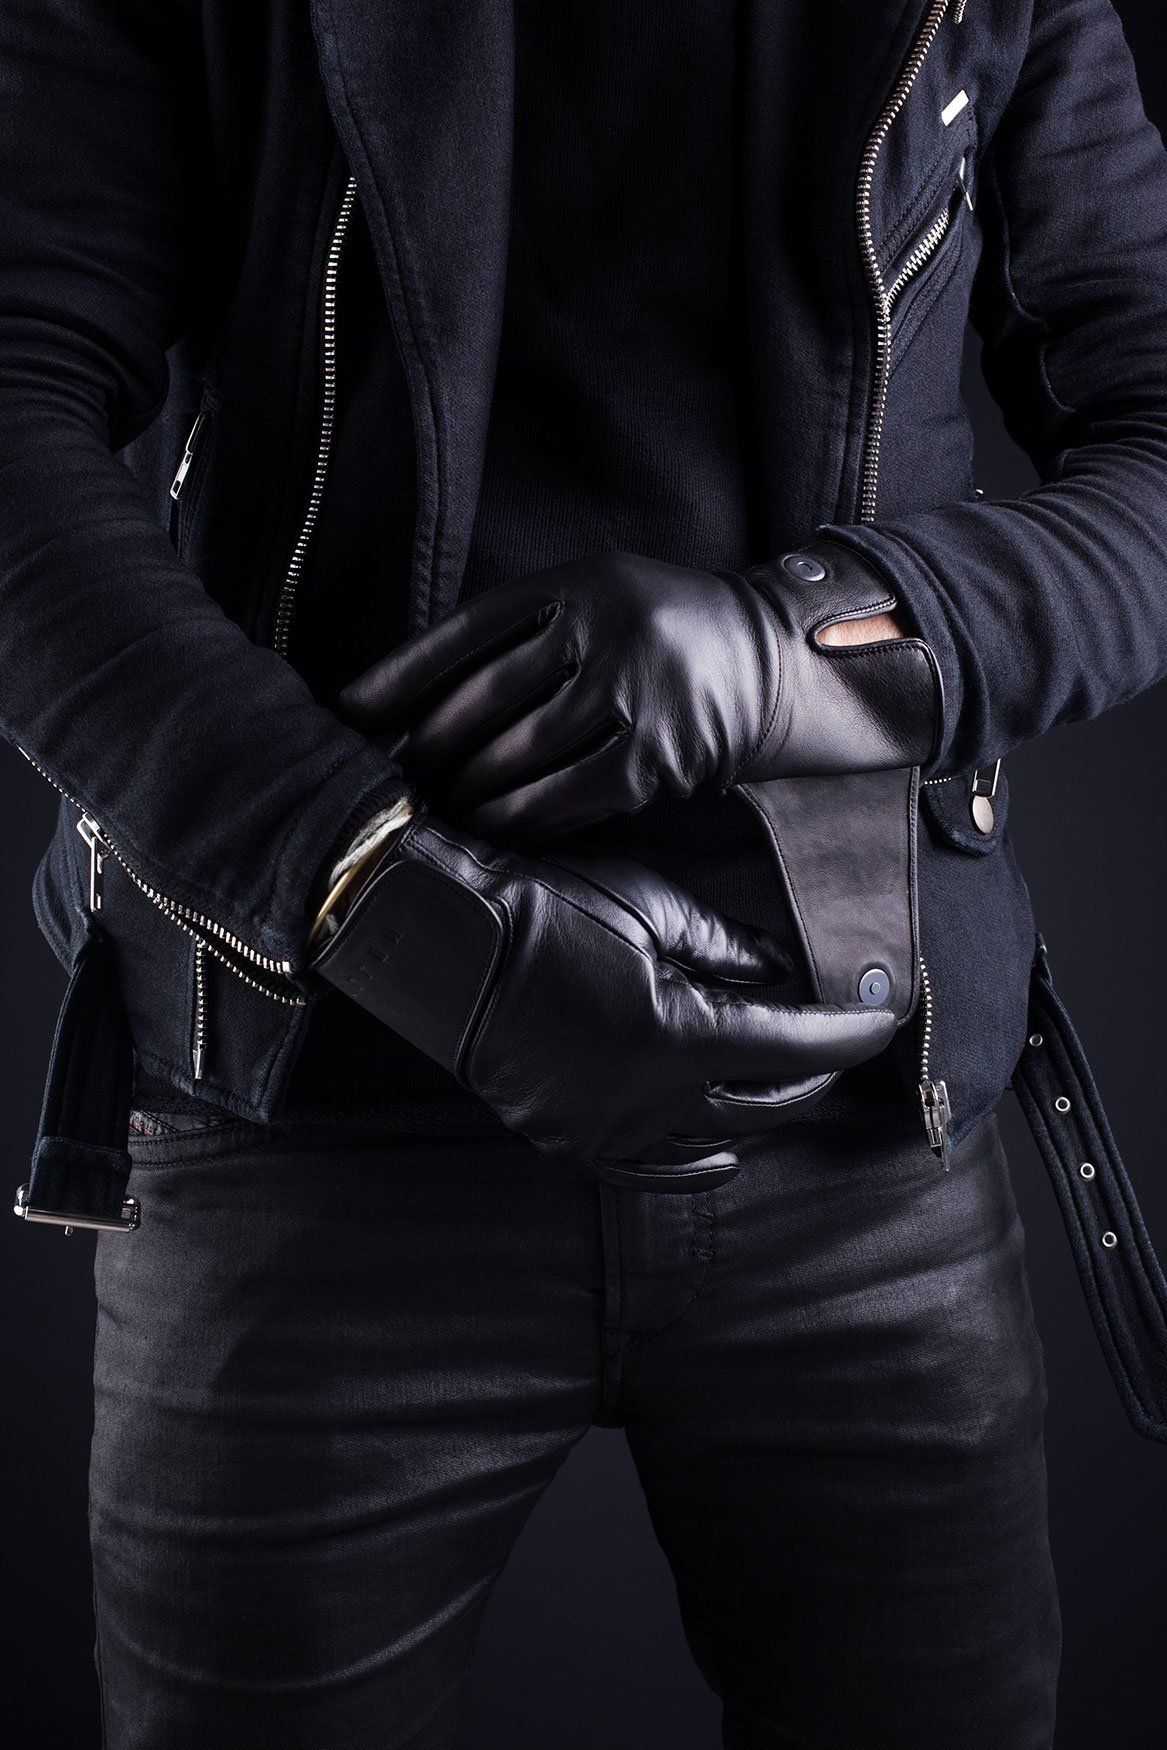 Mens leather gloves target - Fancy Leather Touchscreen Gloves